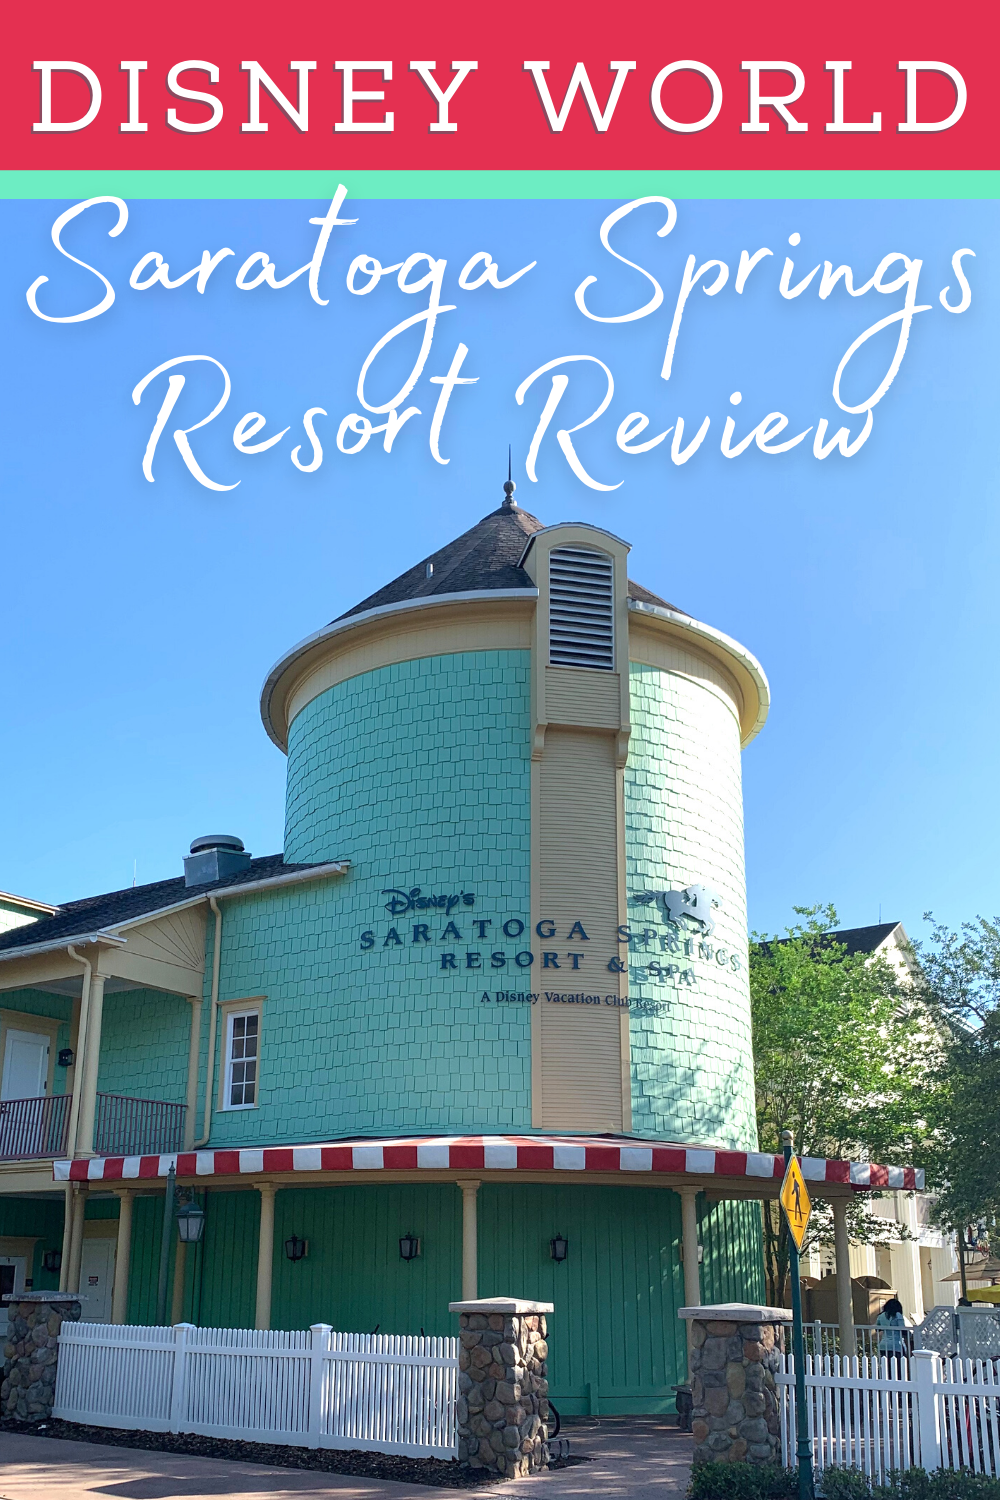 pin with words saratoga springs disney resort review and image of saratoga springs building